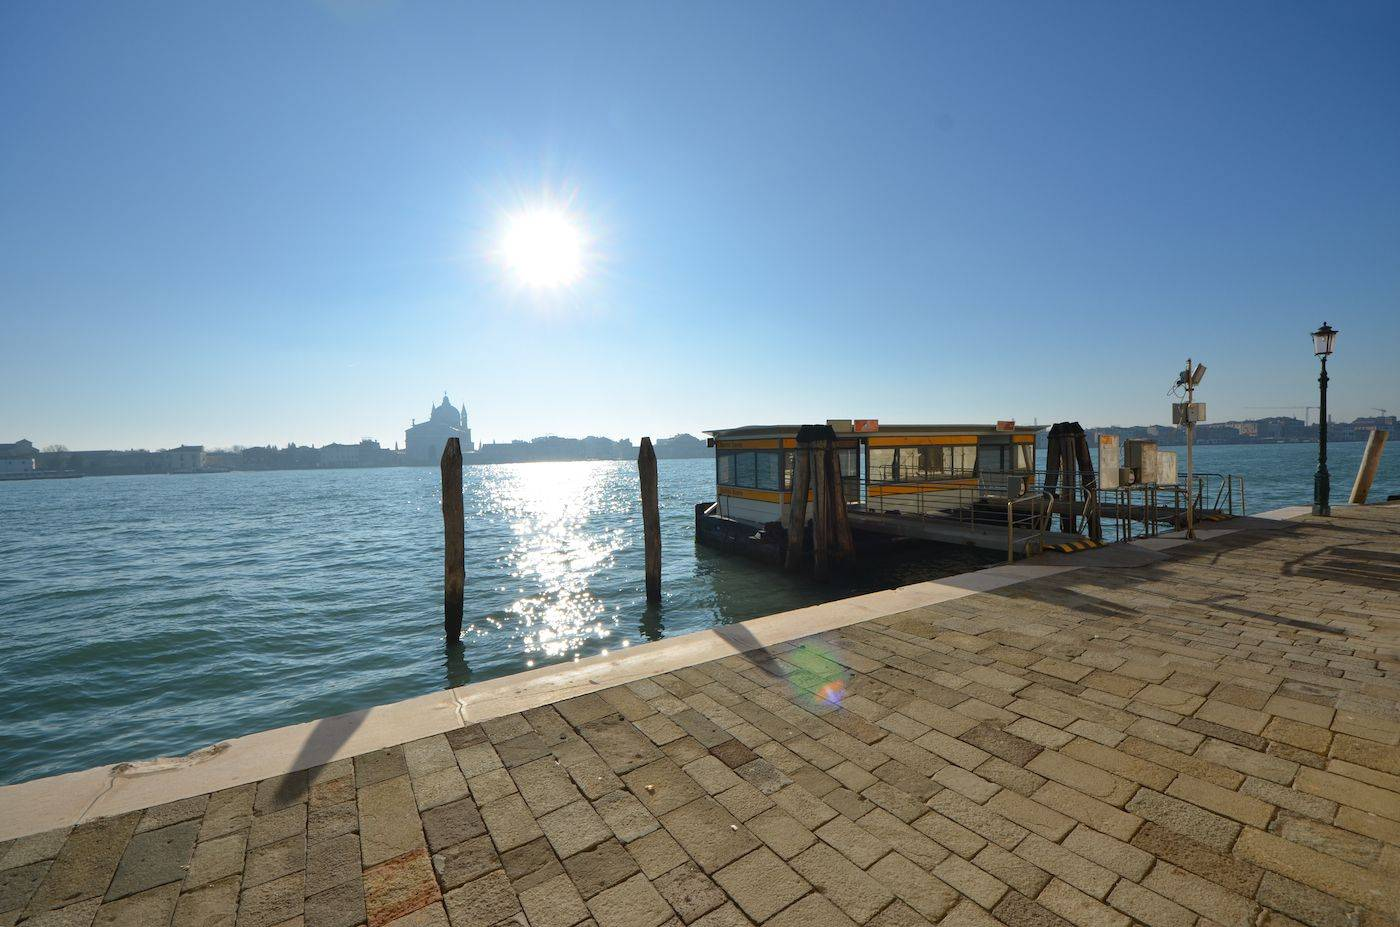 Palladio excellent location and wide open water view